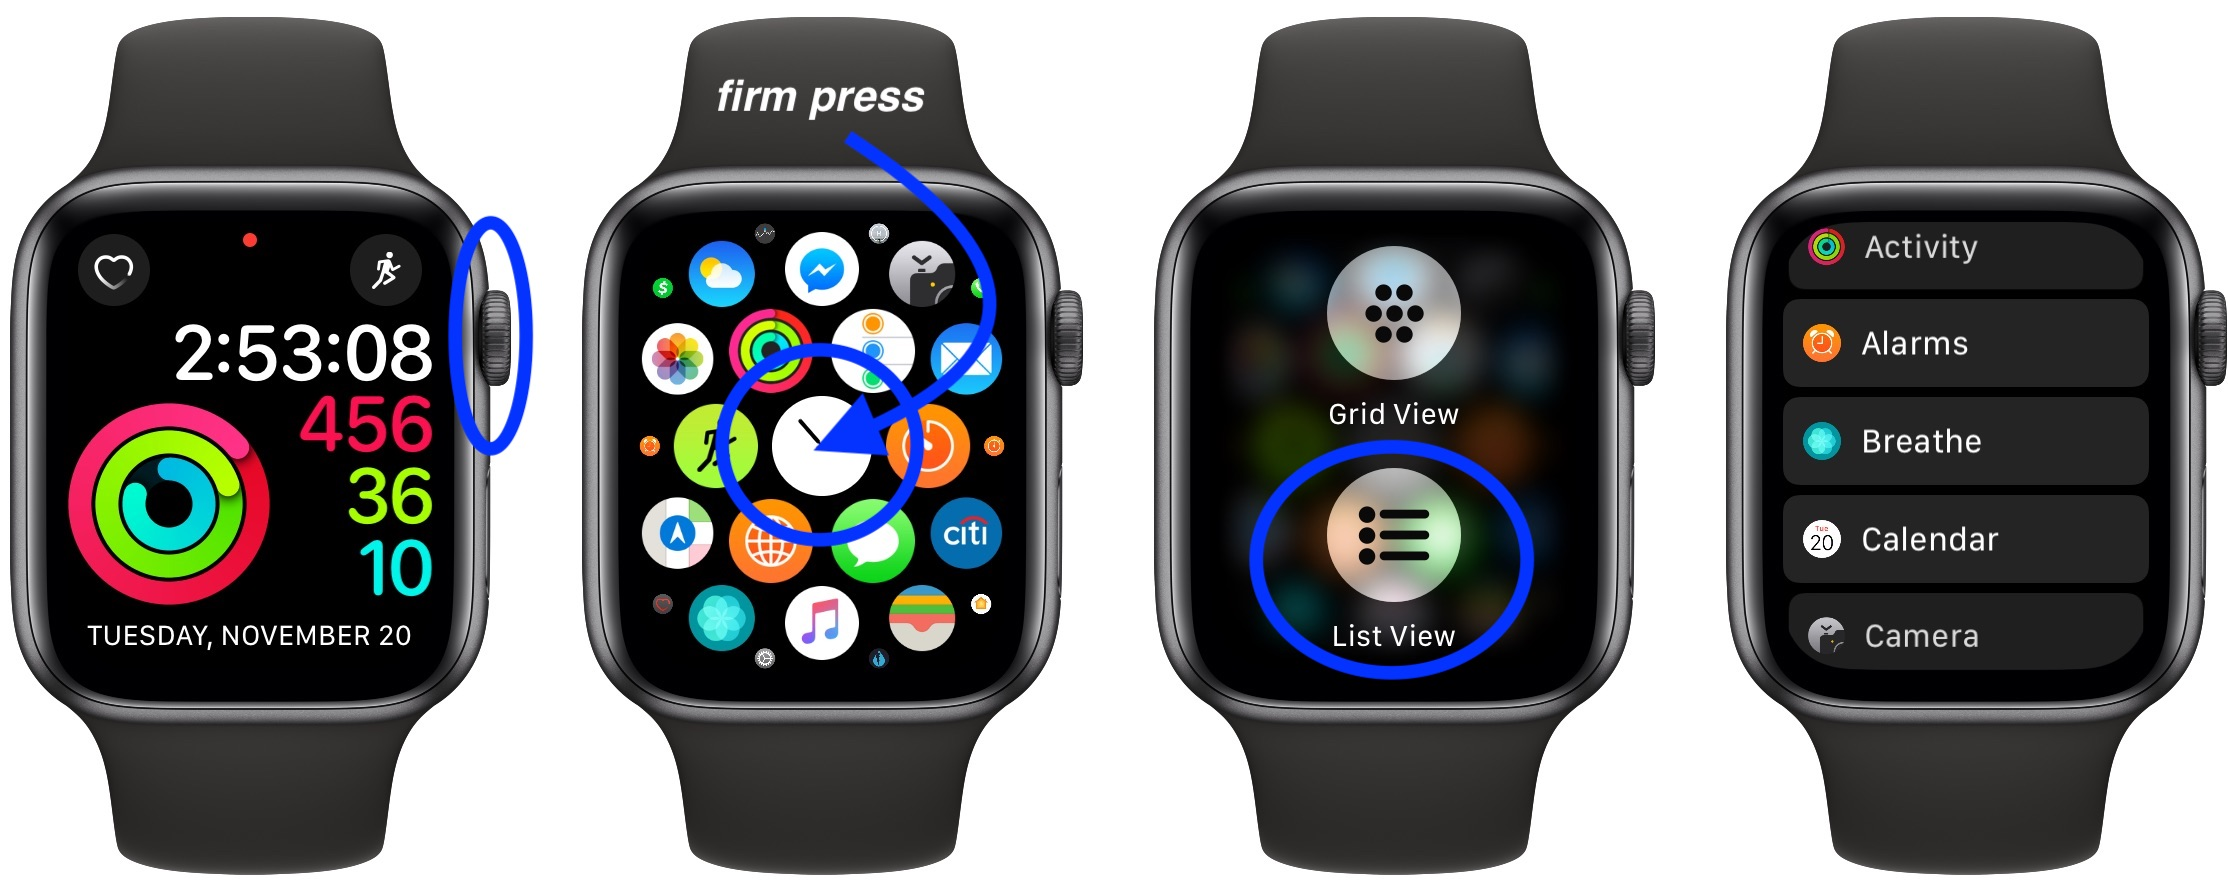 How to switch to list view or grid view on Apple Watch